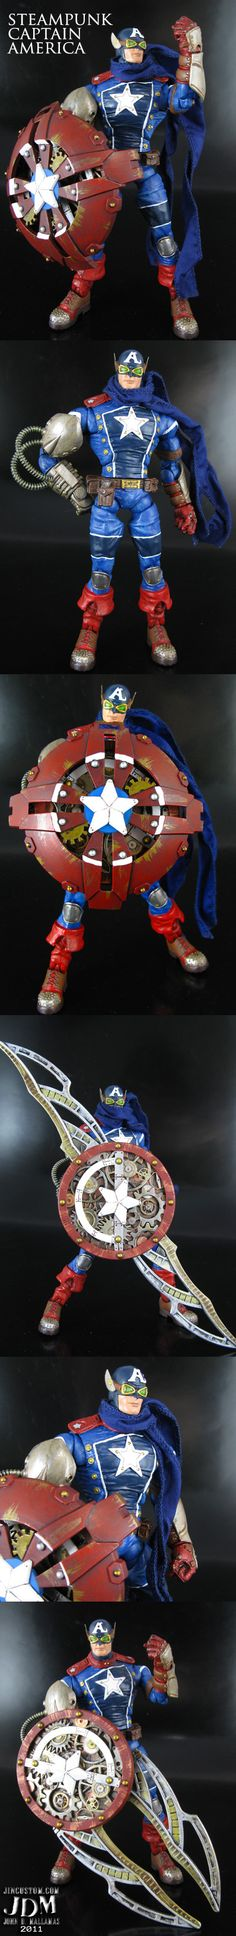 Steampunk Captain America action figure by *Jin-Saotome on deviantART   Follow here http://pinterest.com/cakespinyoface/geekery/ for even more Geekery-- art, tech and more!